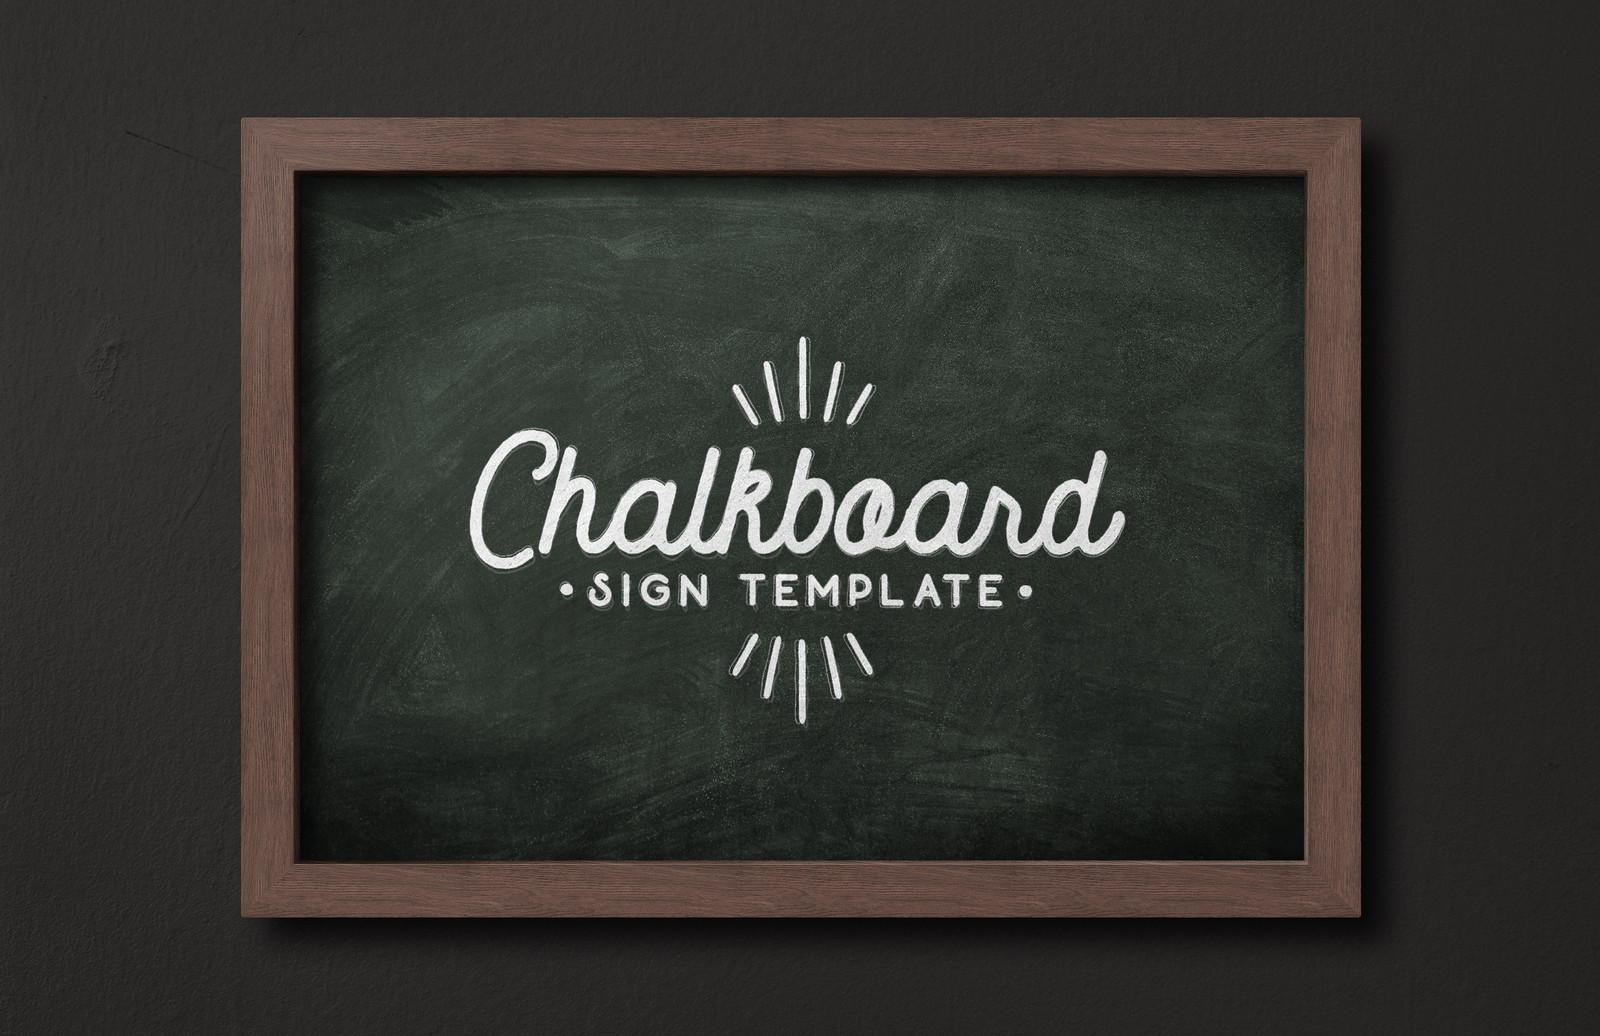 Chalkboard Sign Template Medialoot - Chalkboard sign template